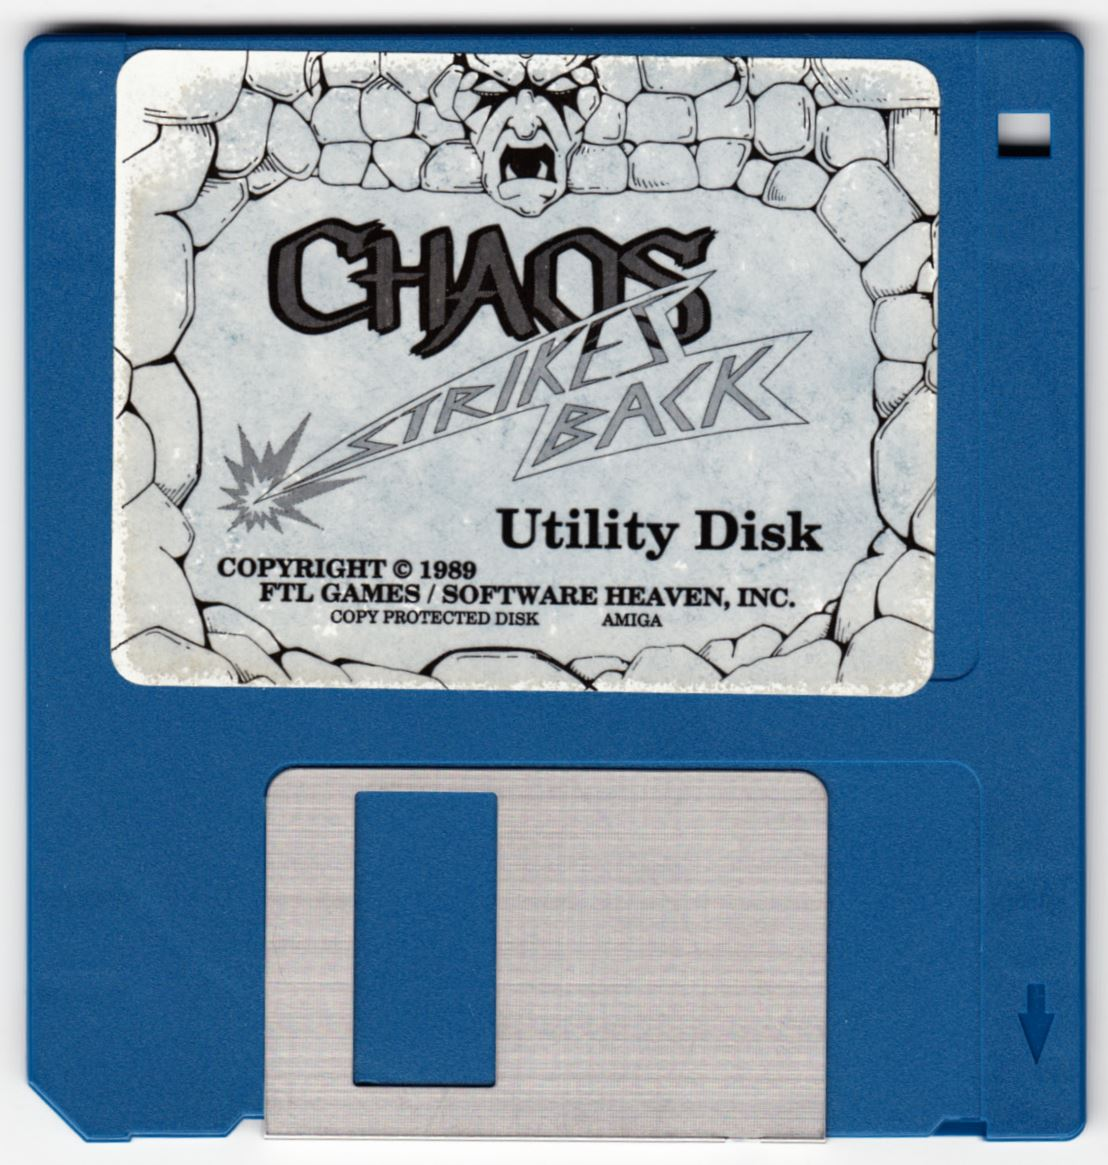 Game - Chaos Strikes Back - UK - Amiga - Utility Disk - Front - Scan